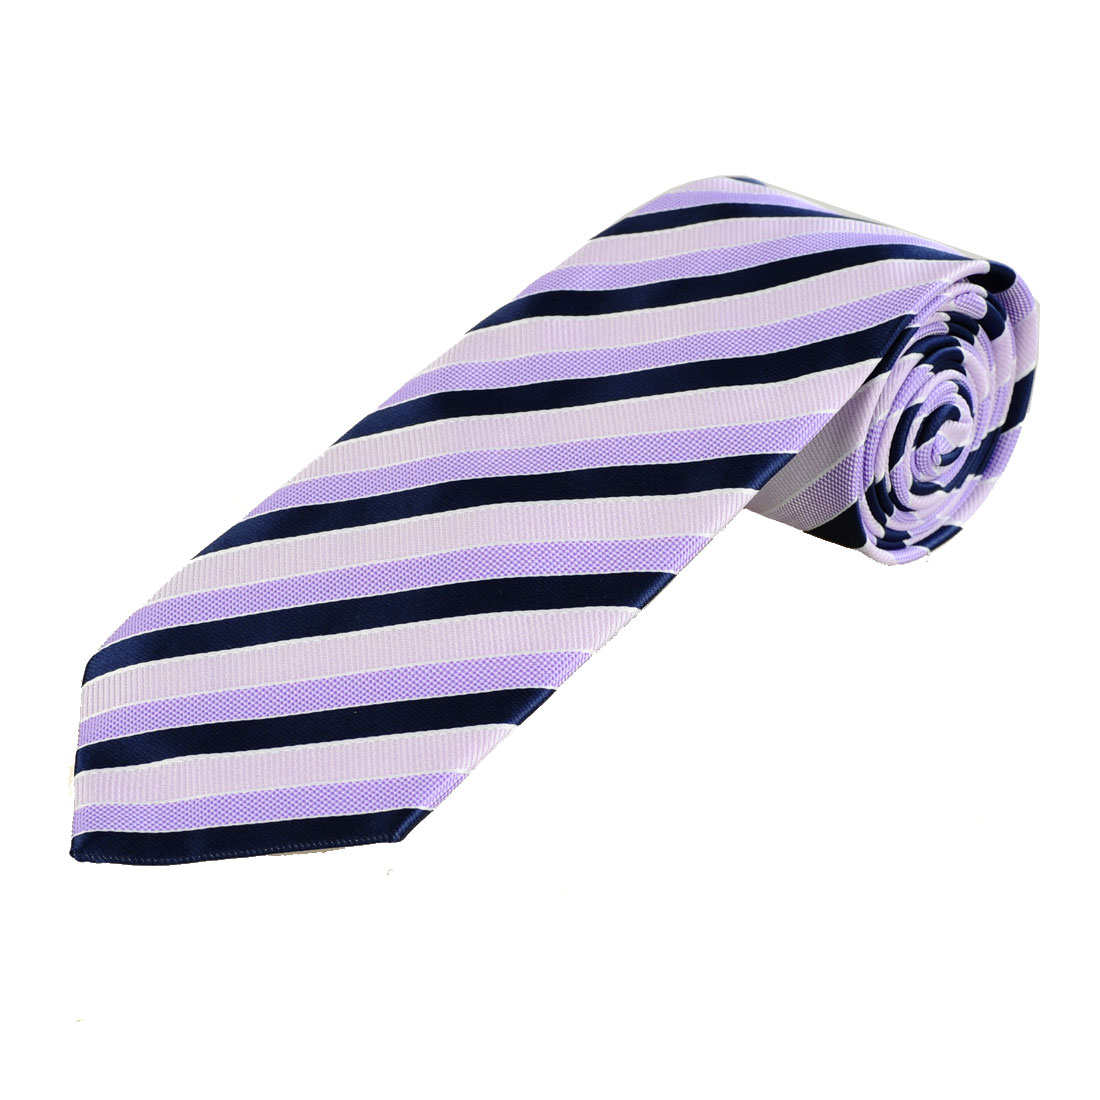 Black Light Pink Inclined Stripes Print Textured Tie Necktie for Men